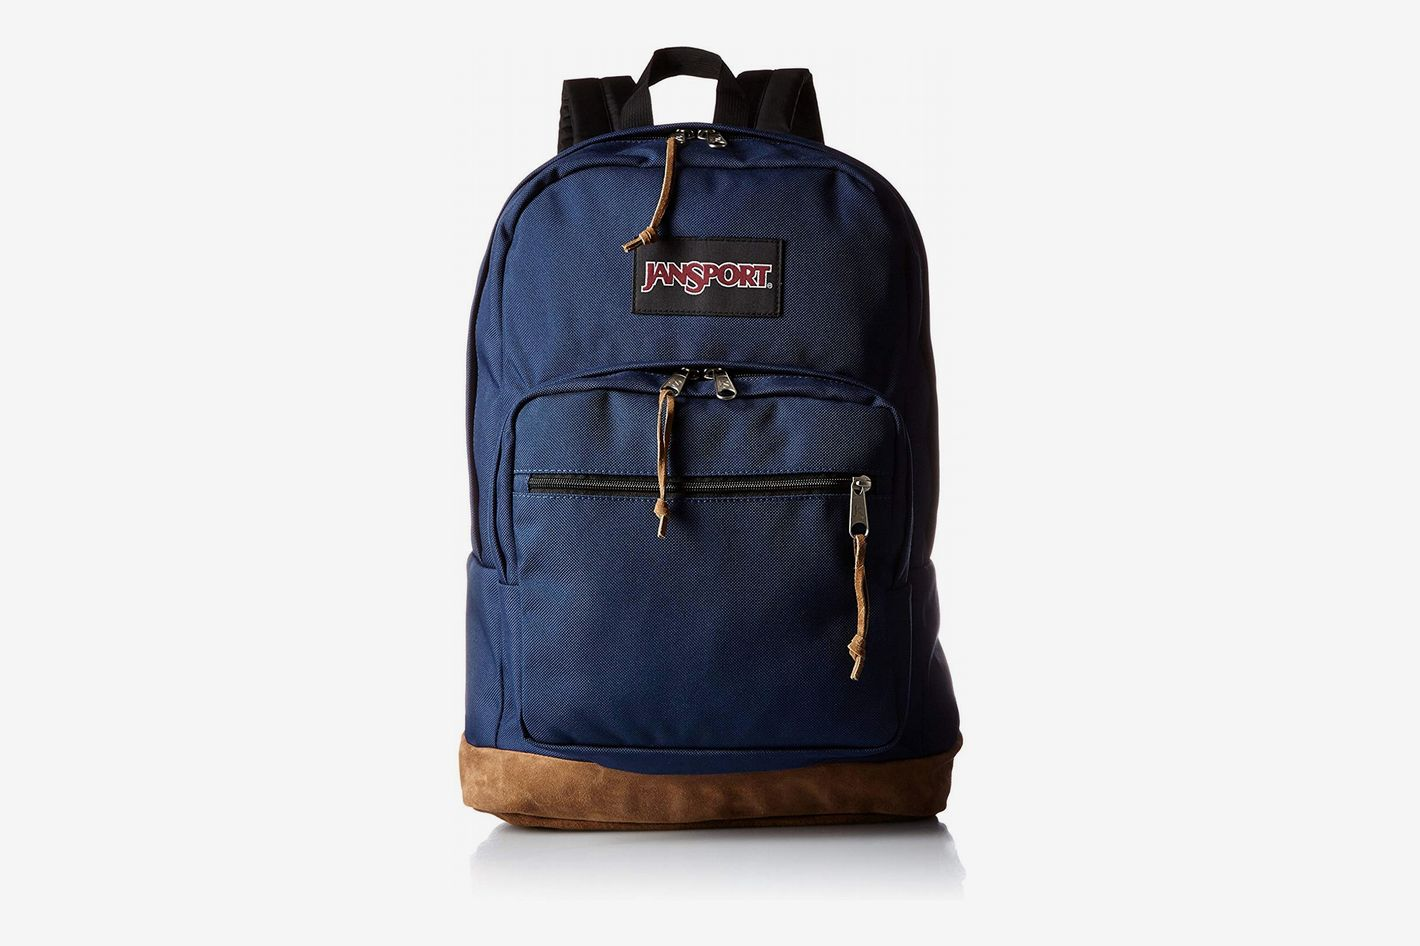 a41599f694b8 The 14 Best Laptop Backpacks on Amazon 2019